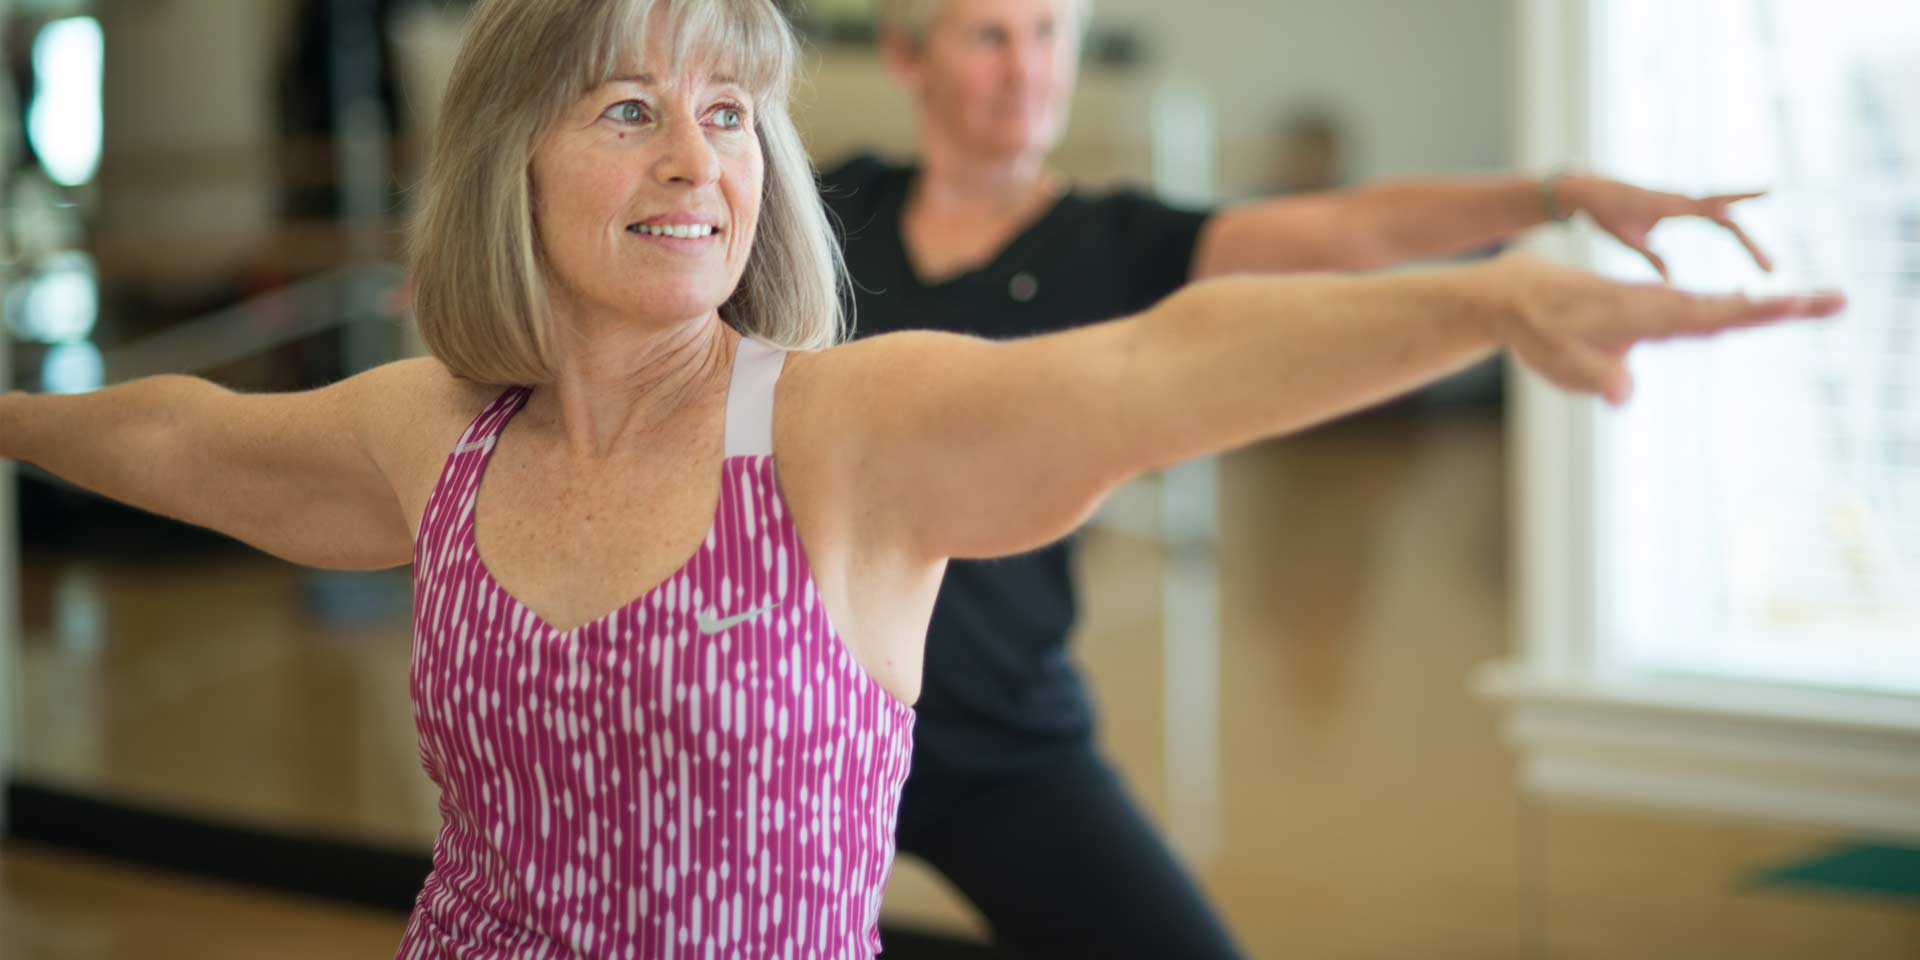 Proper Exercise Can Help Increase Balance, Prevent Falls